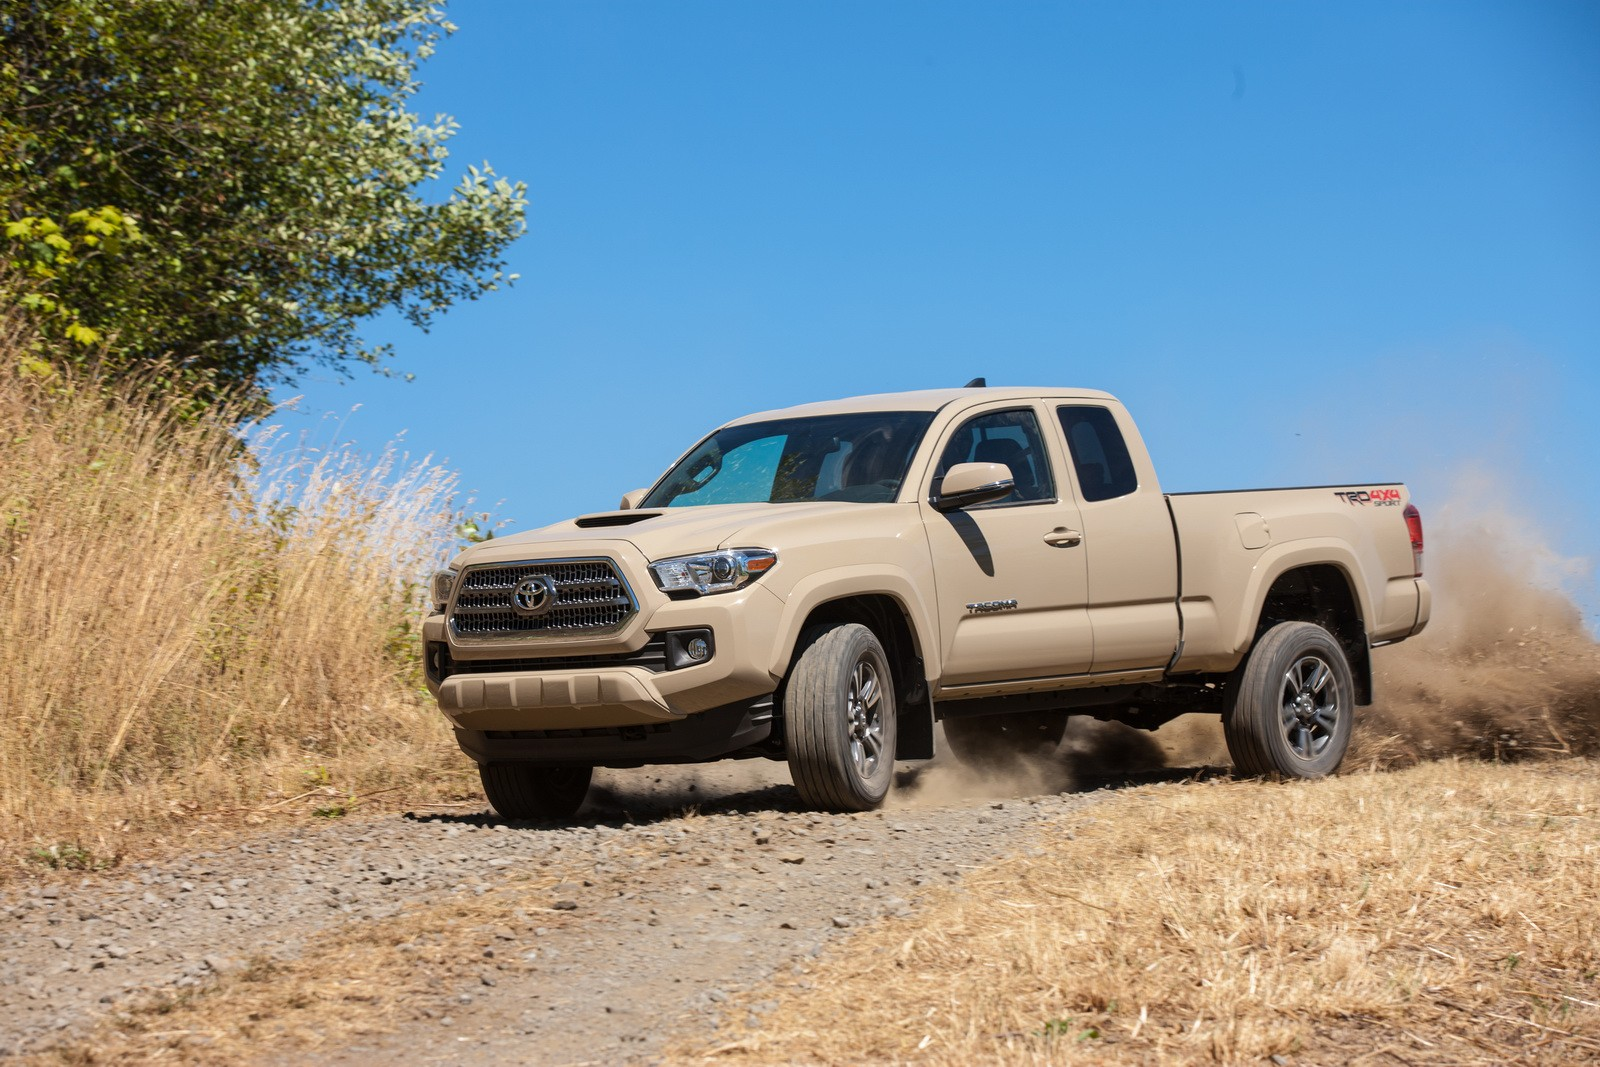 2016 Toyota Tacoma Price Revealed Prepare 22300 For The